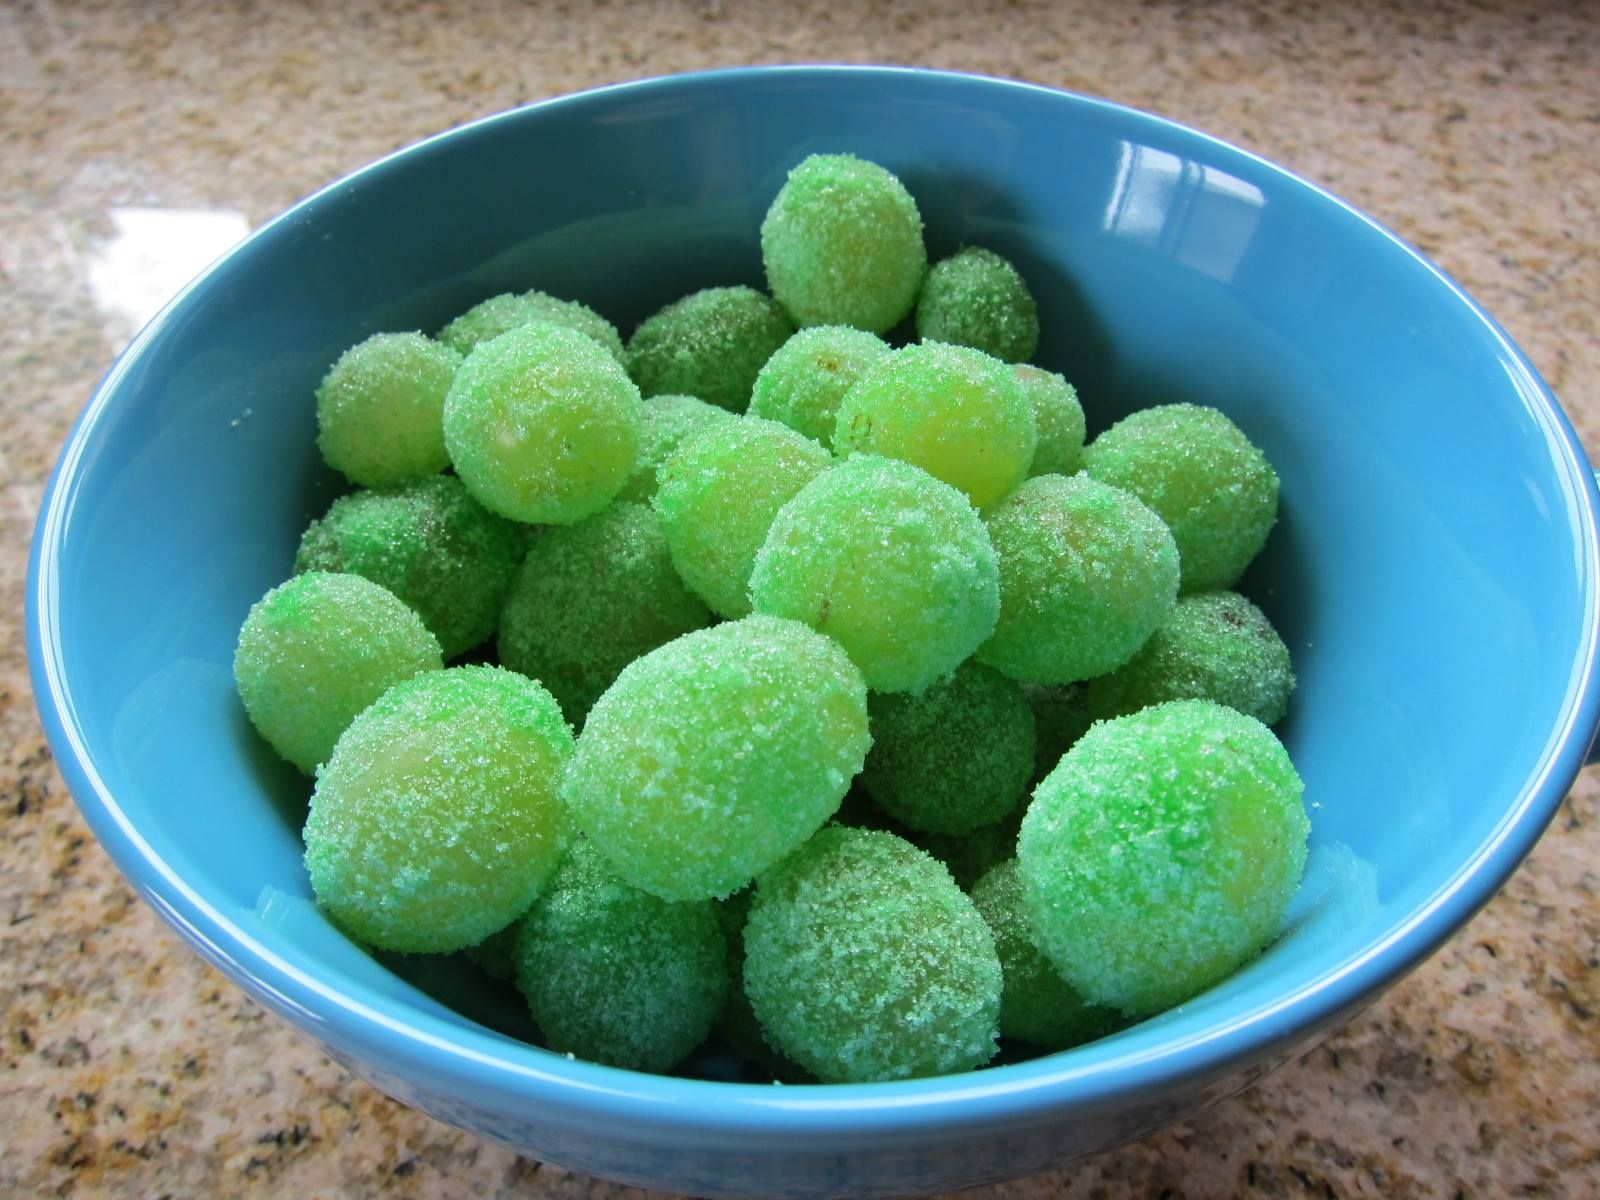 Glitter Grapes (aka Leprechaun Candy)  Wash a bunch of green grapes, while slightly damp roll in Jello, put in fridge or freezer.